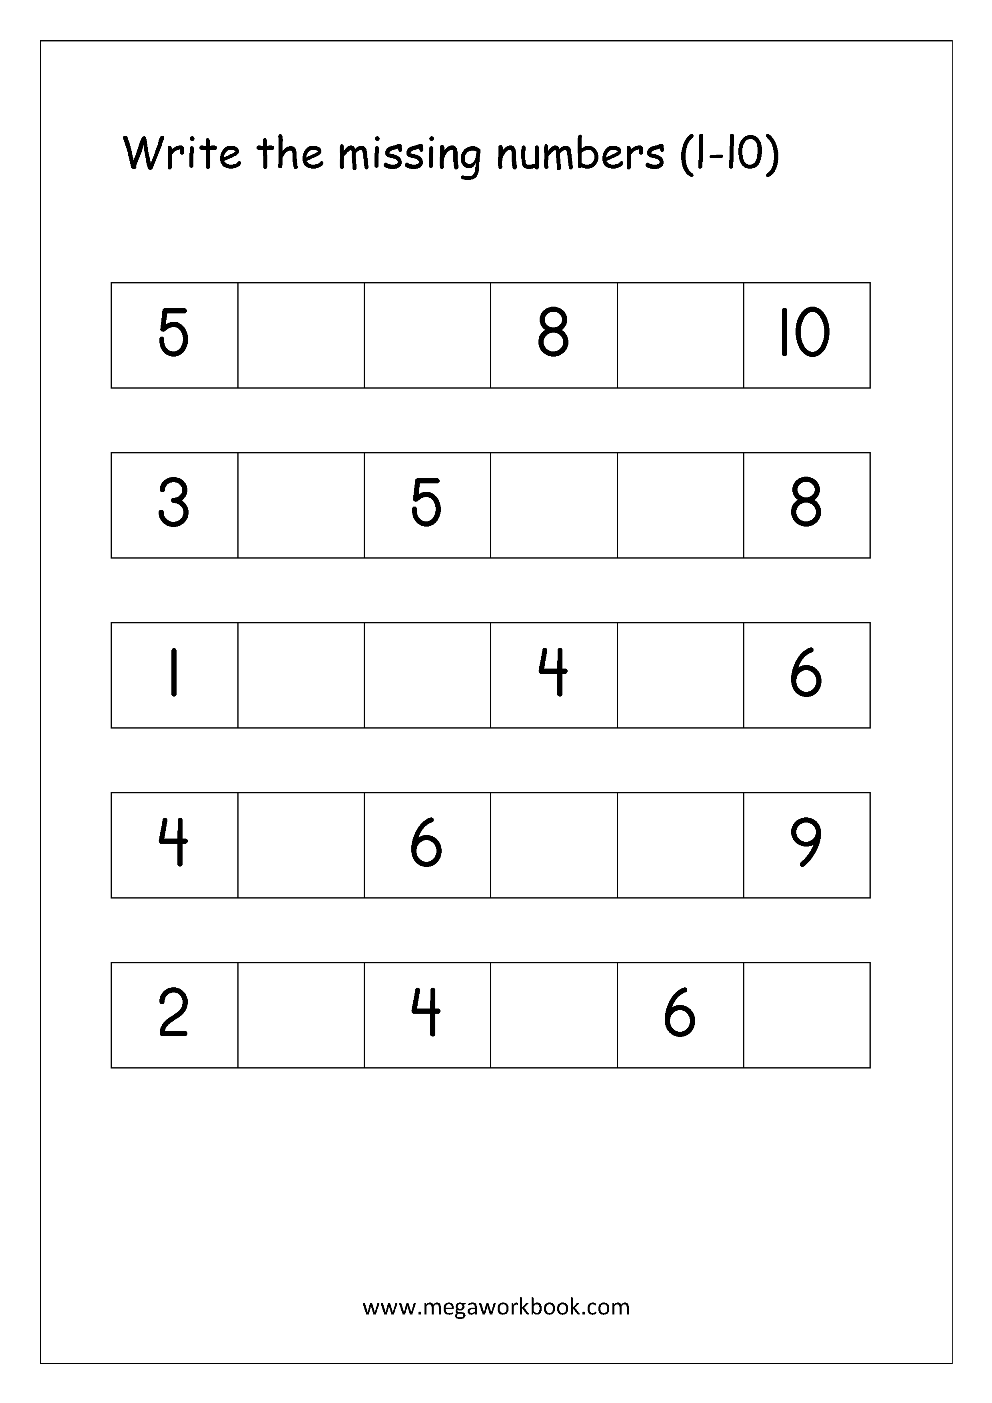 Free Math Worksheets - Number Ordering and Missing Numbers ...